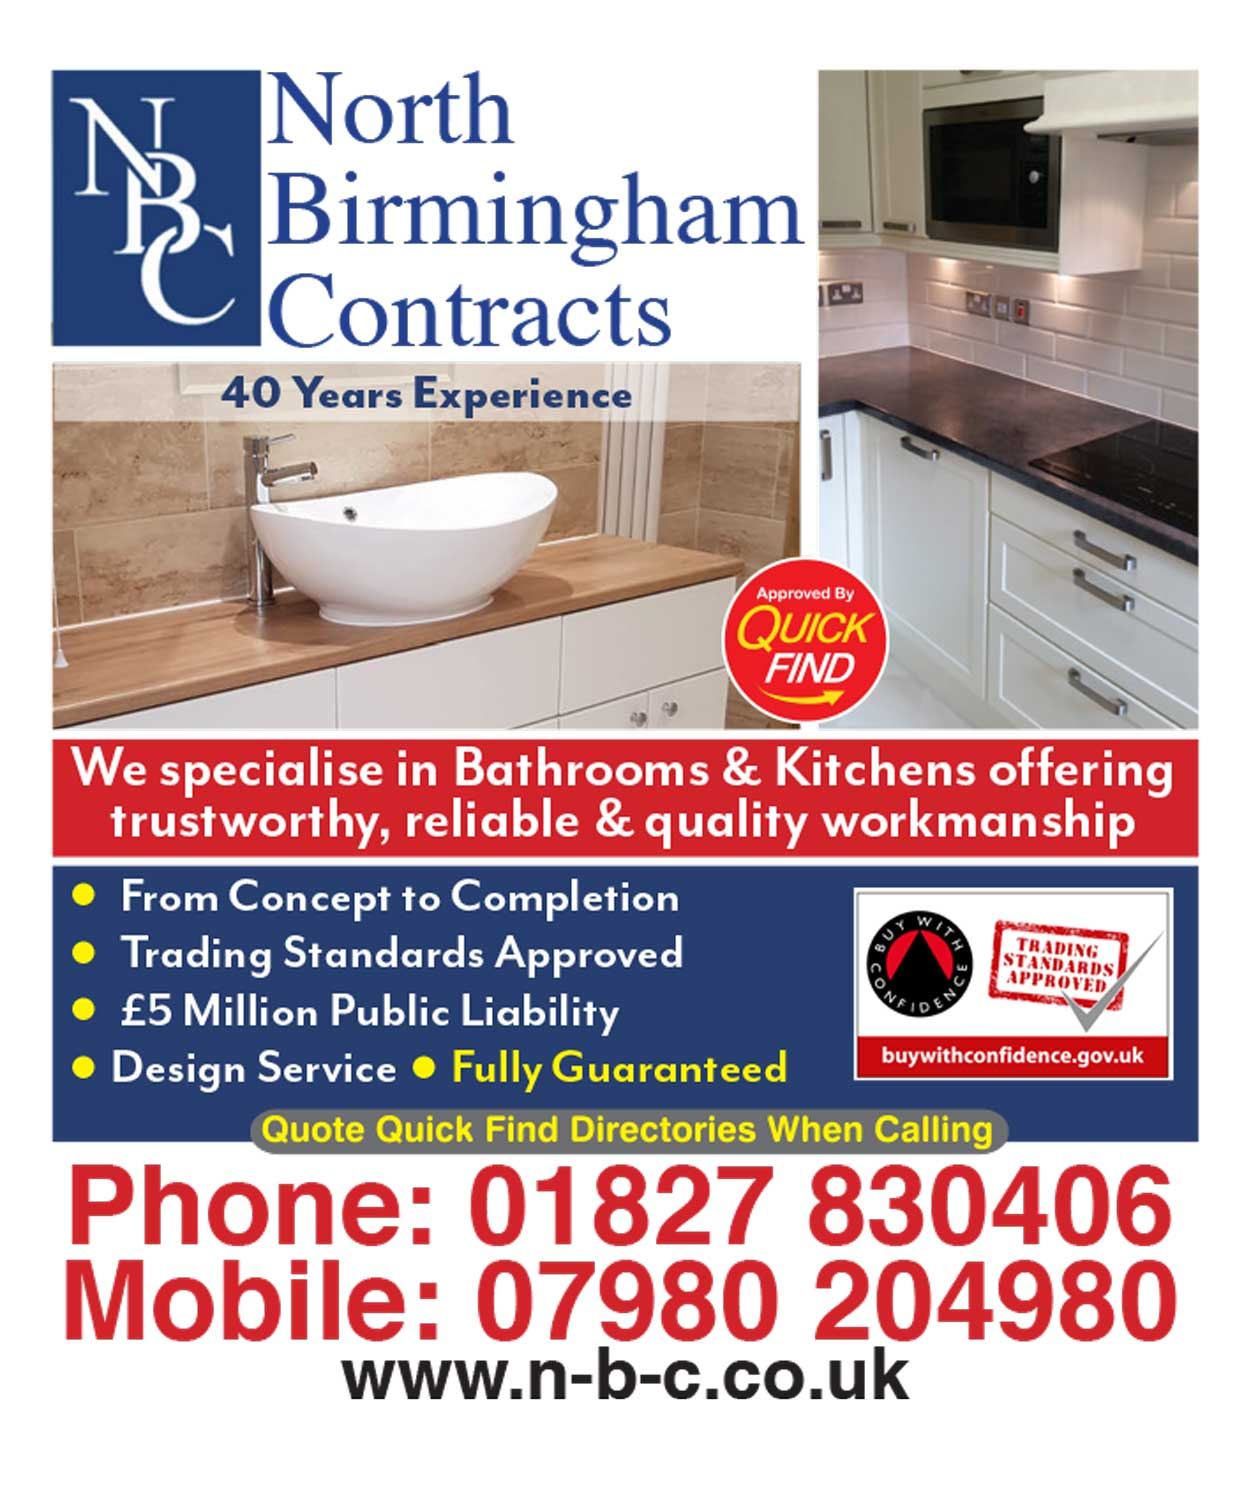 North Birmingham Contracts